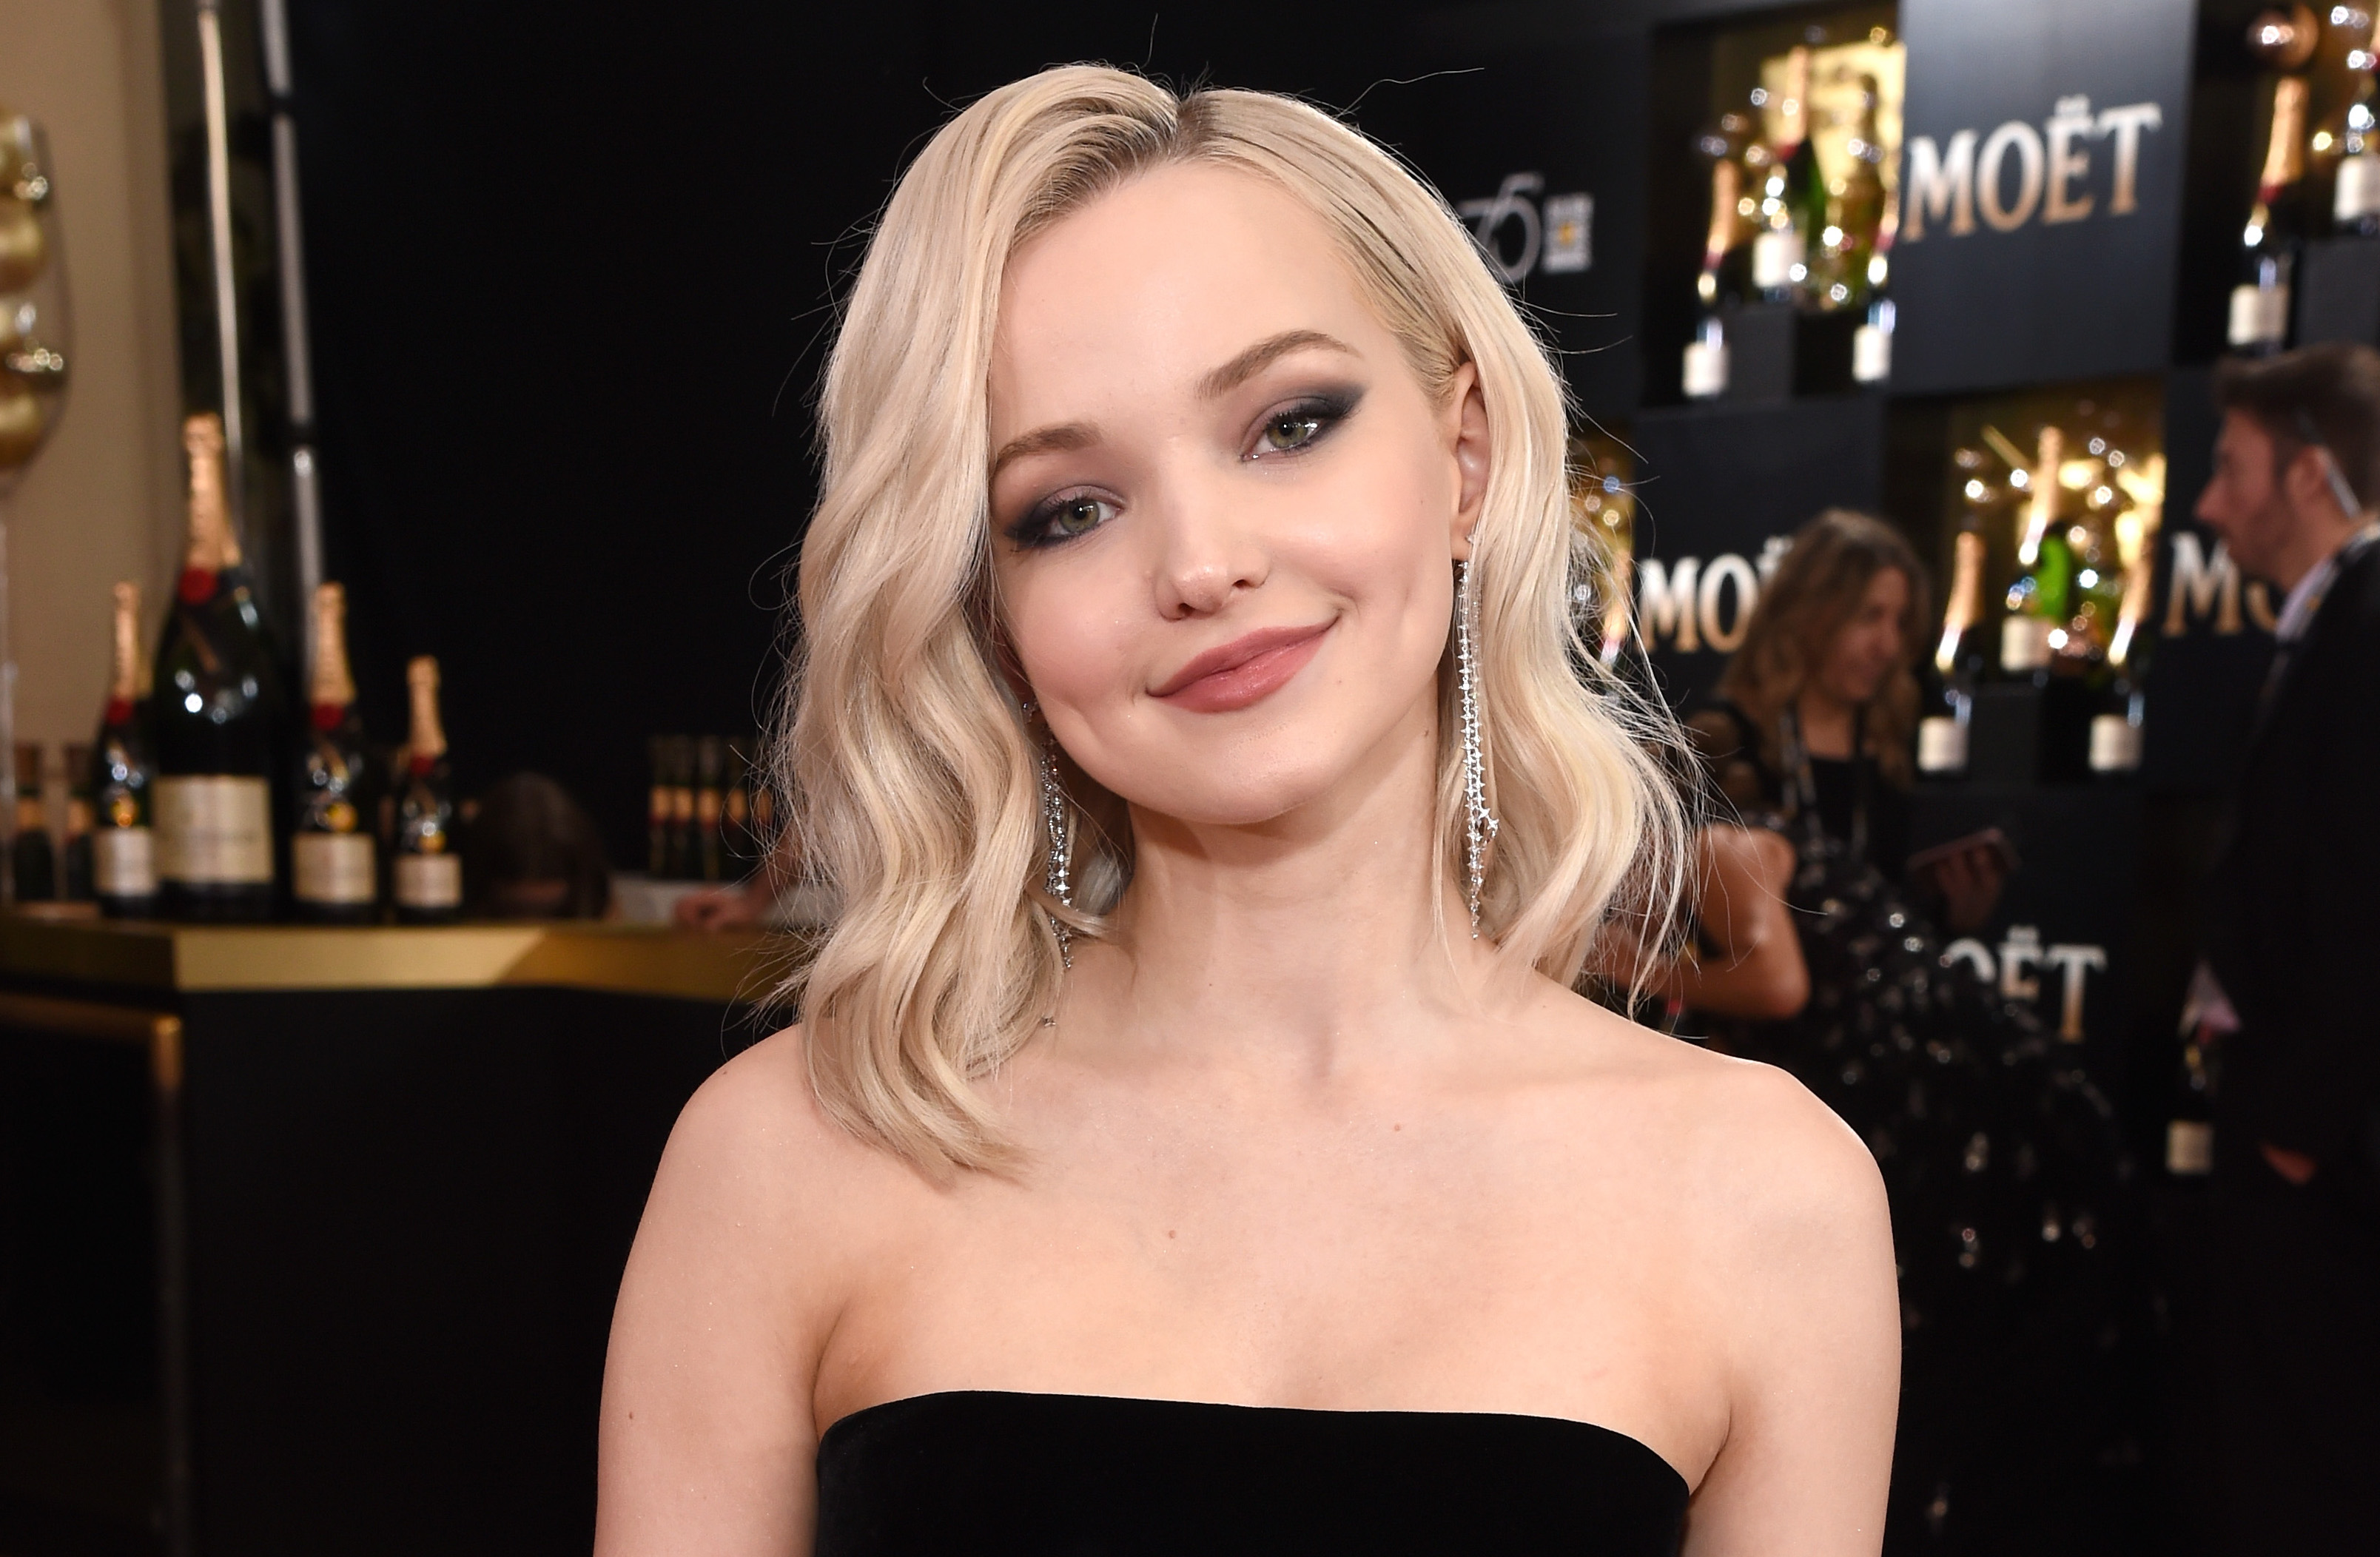 Dove Cameron S Tattoos Guide To Disney Star S Ink Designs